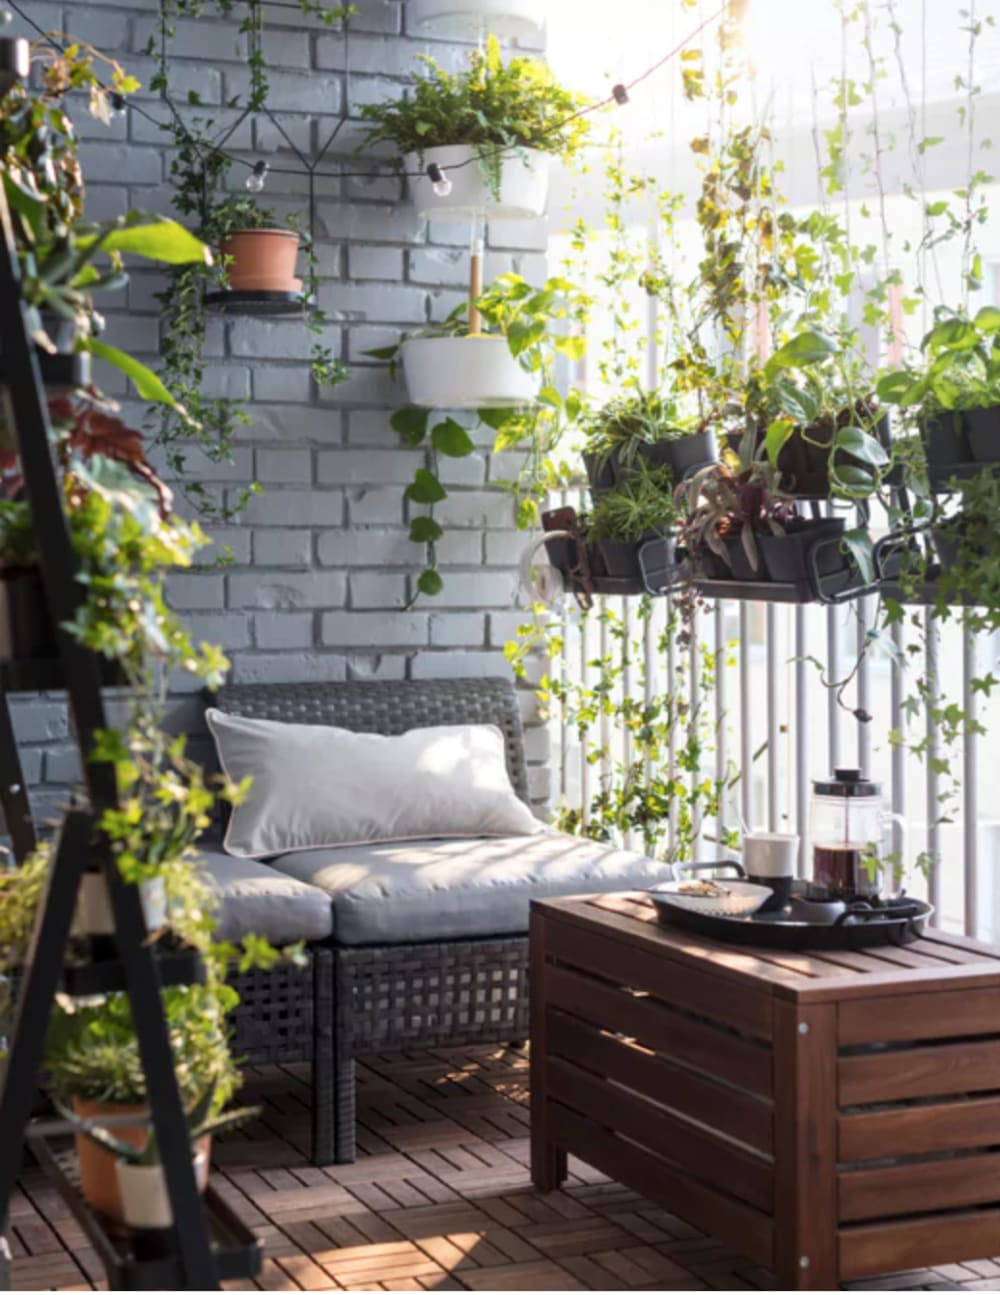 """Balcony with greenery all around.<span class=""""sr-only""""> (opened in a new window/tab)</span>"""